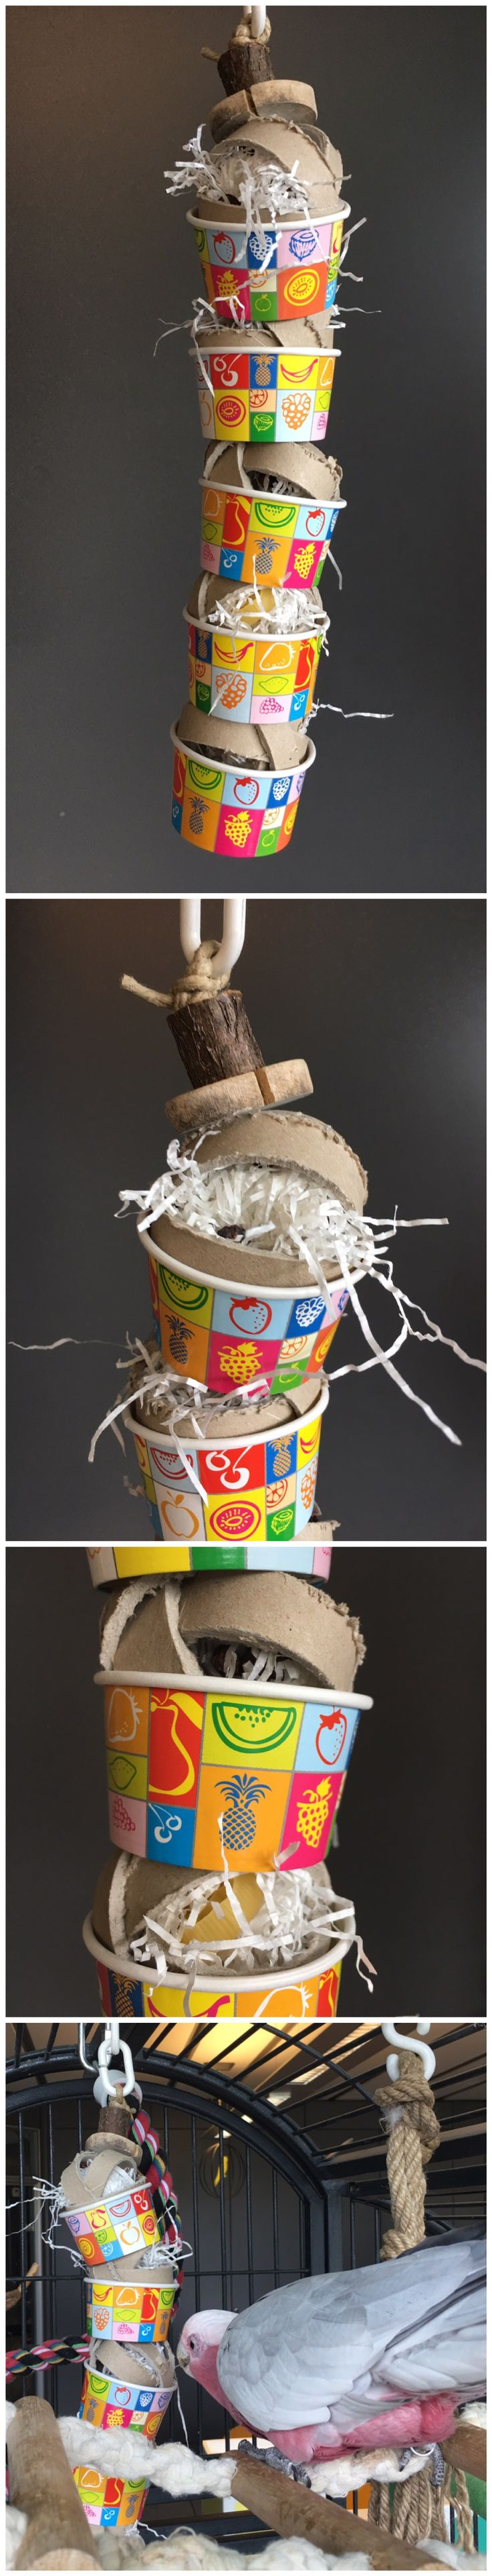 Parrot foraging toy made with cardboard rolls and ice cream cups